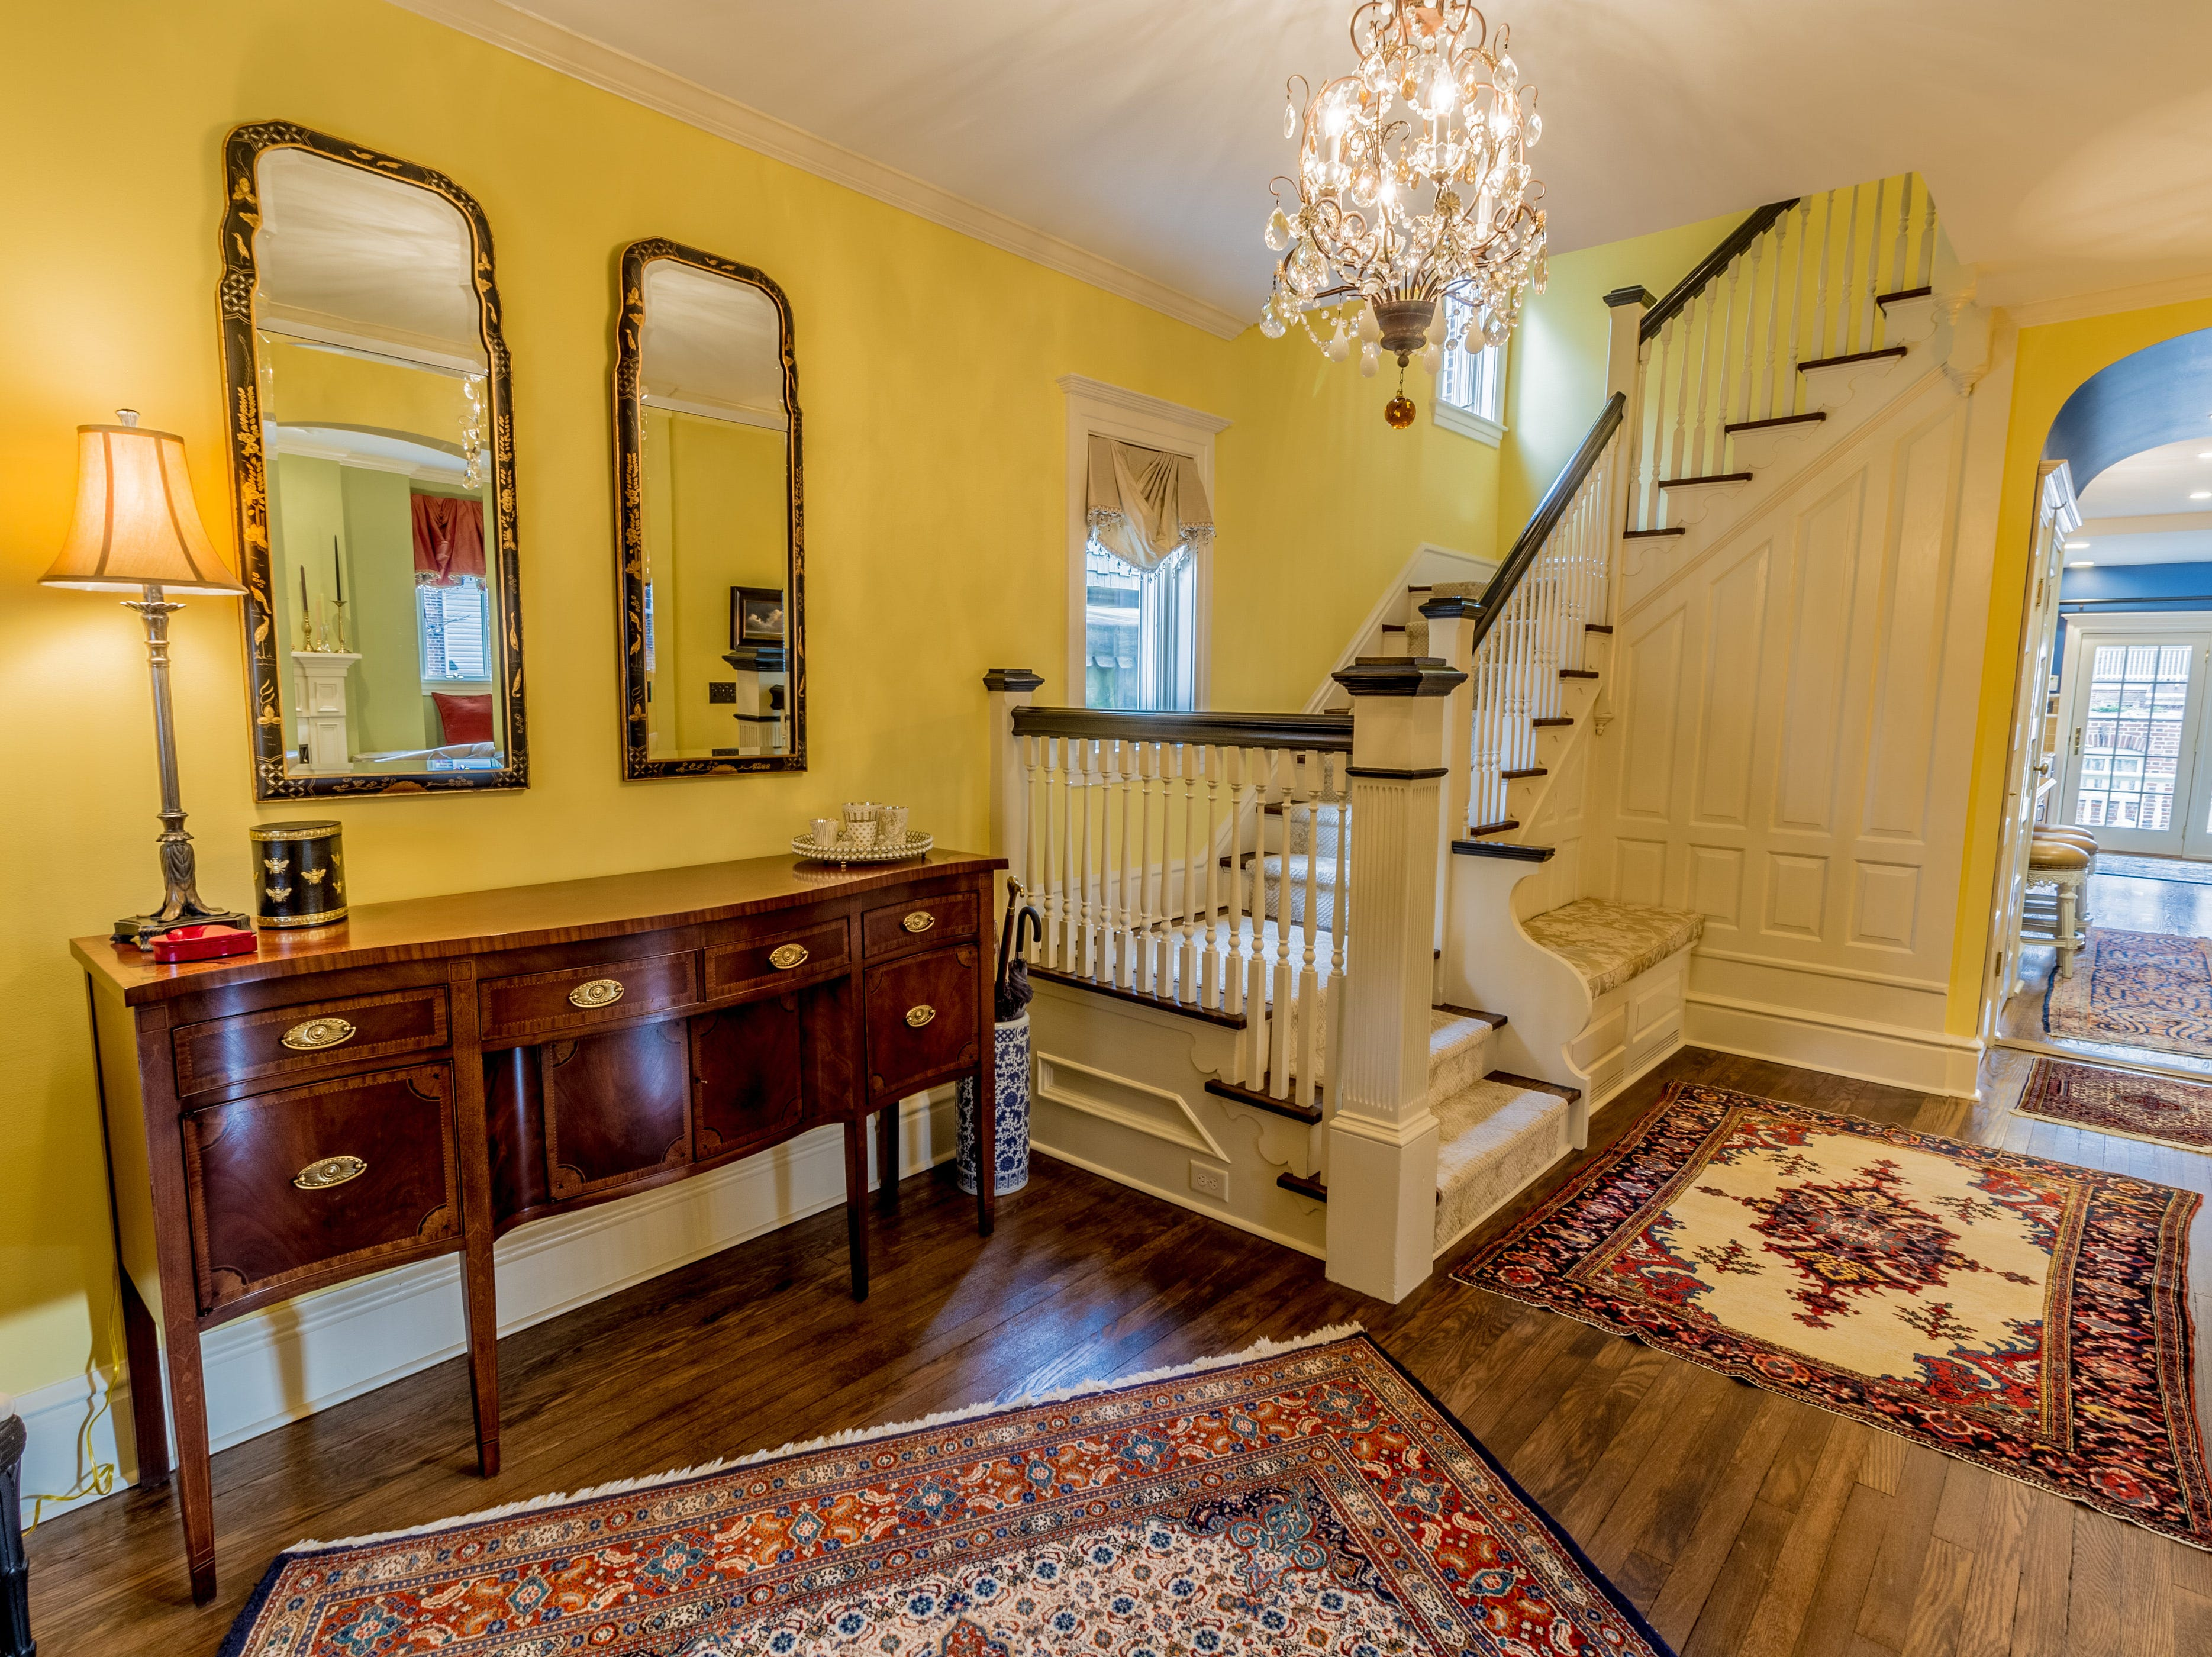 The Cool Spring house at 1100 North Rodney features archways and a turned staircase.